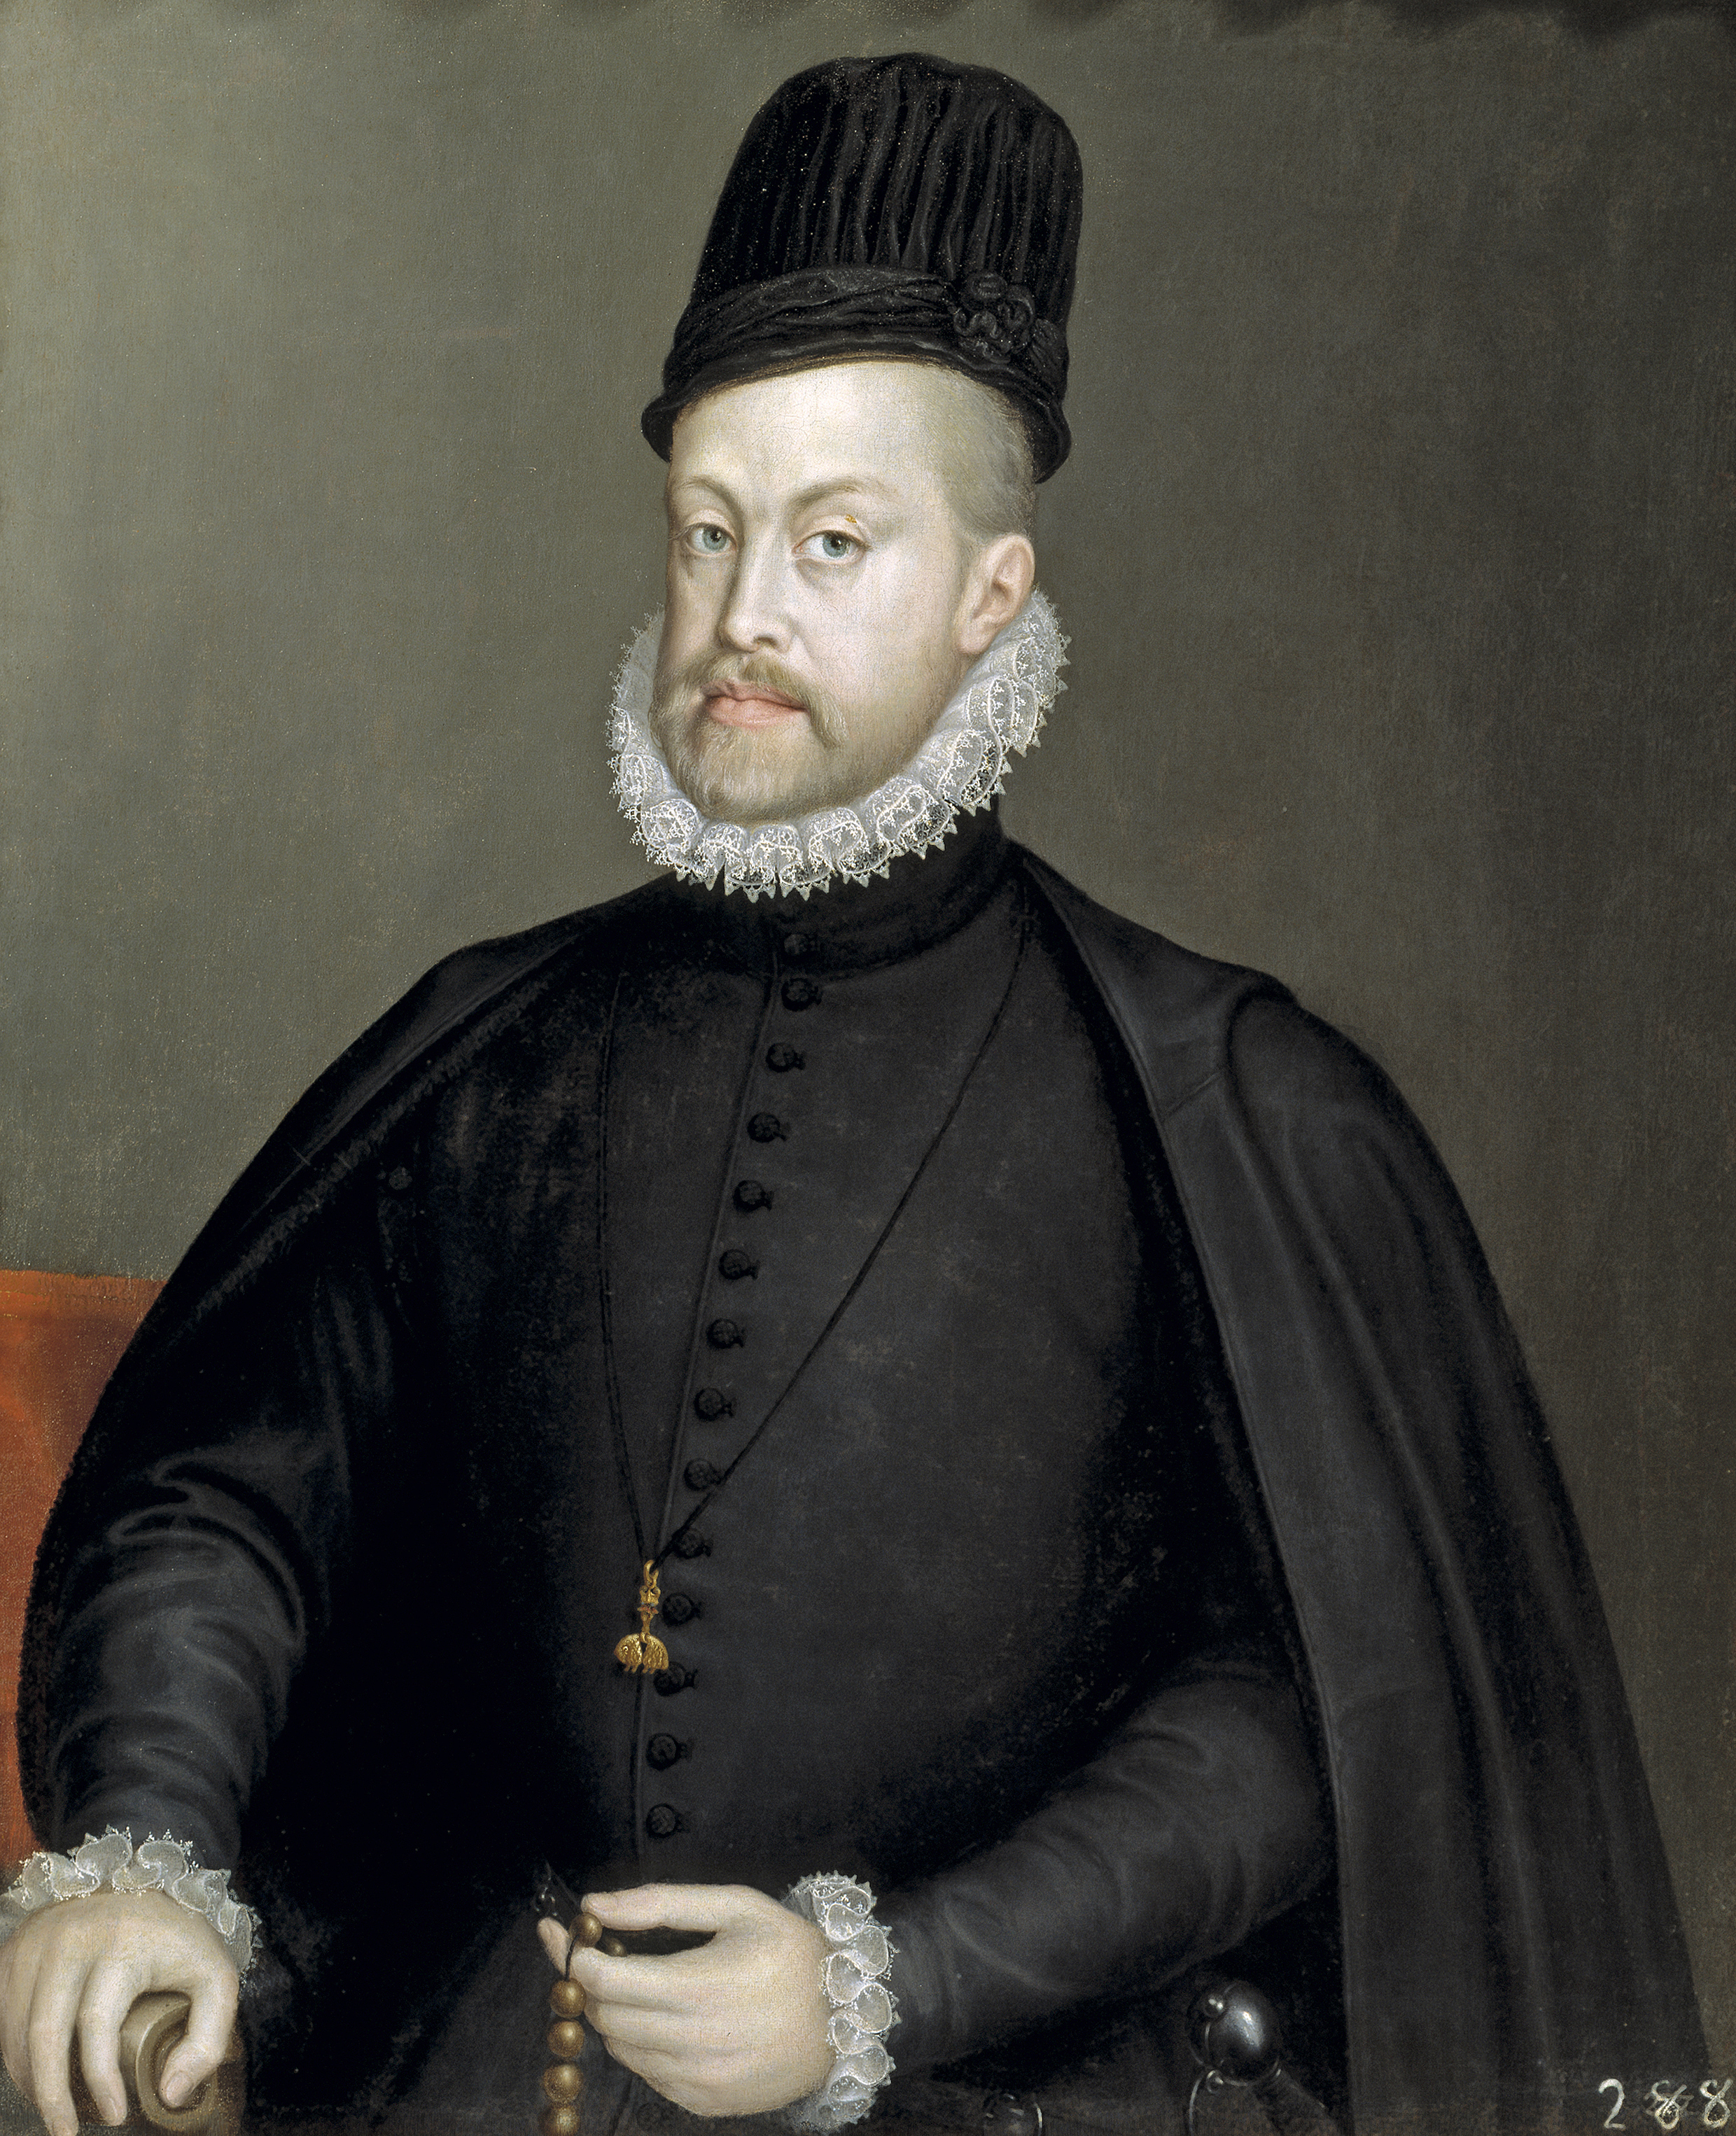 Portrait of Philip II of Spain by Sofonisba Anguissola - 002b